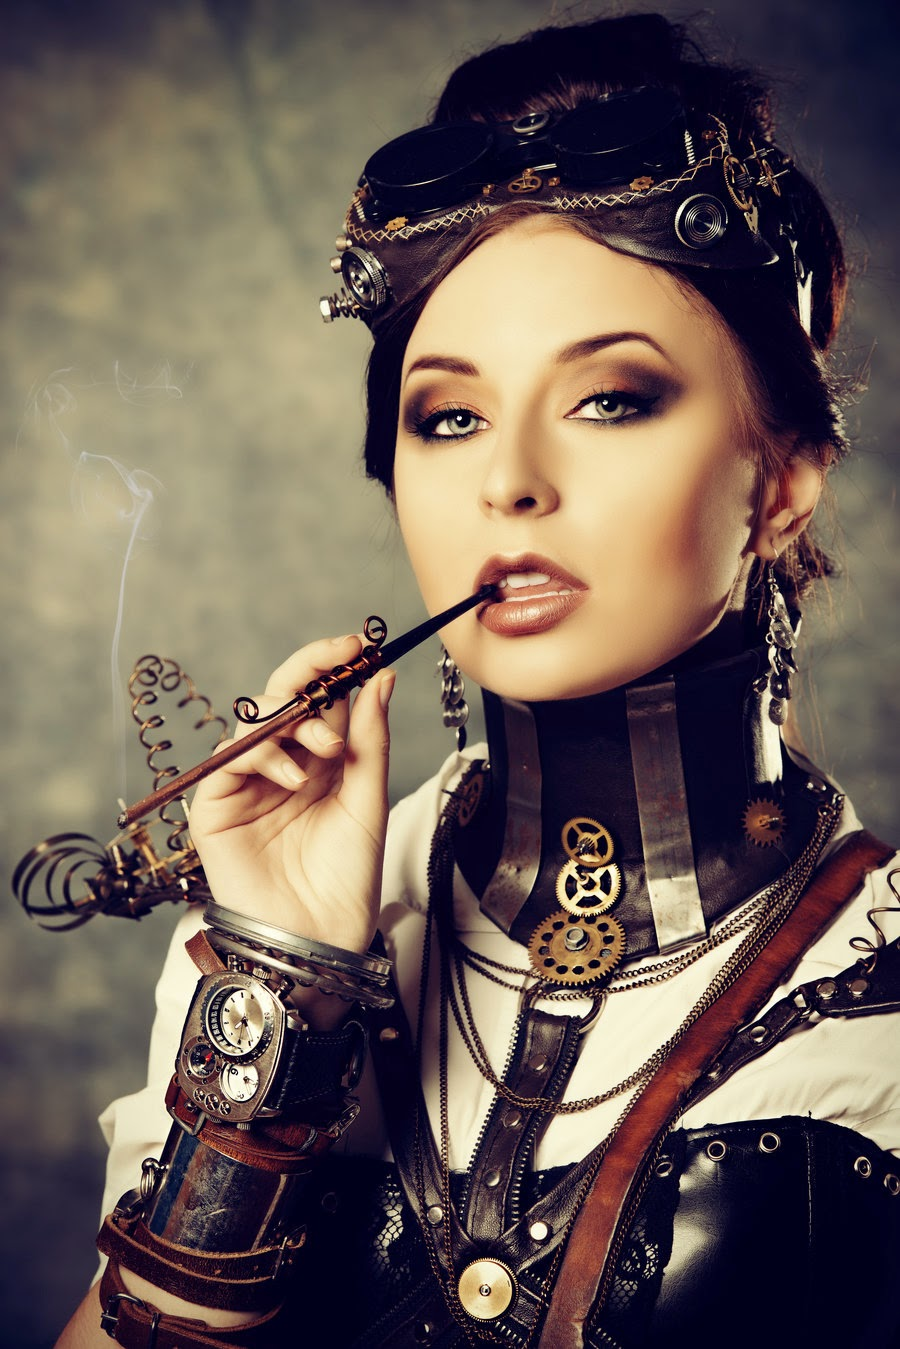 steampunk woman cigarette pipe goggle wrist cuff